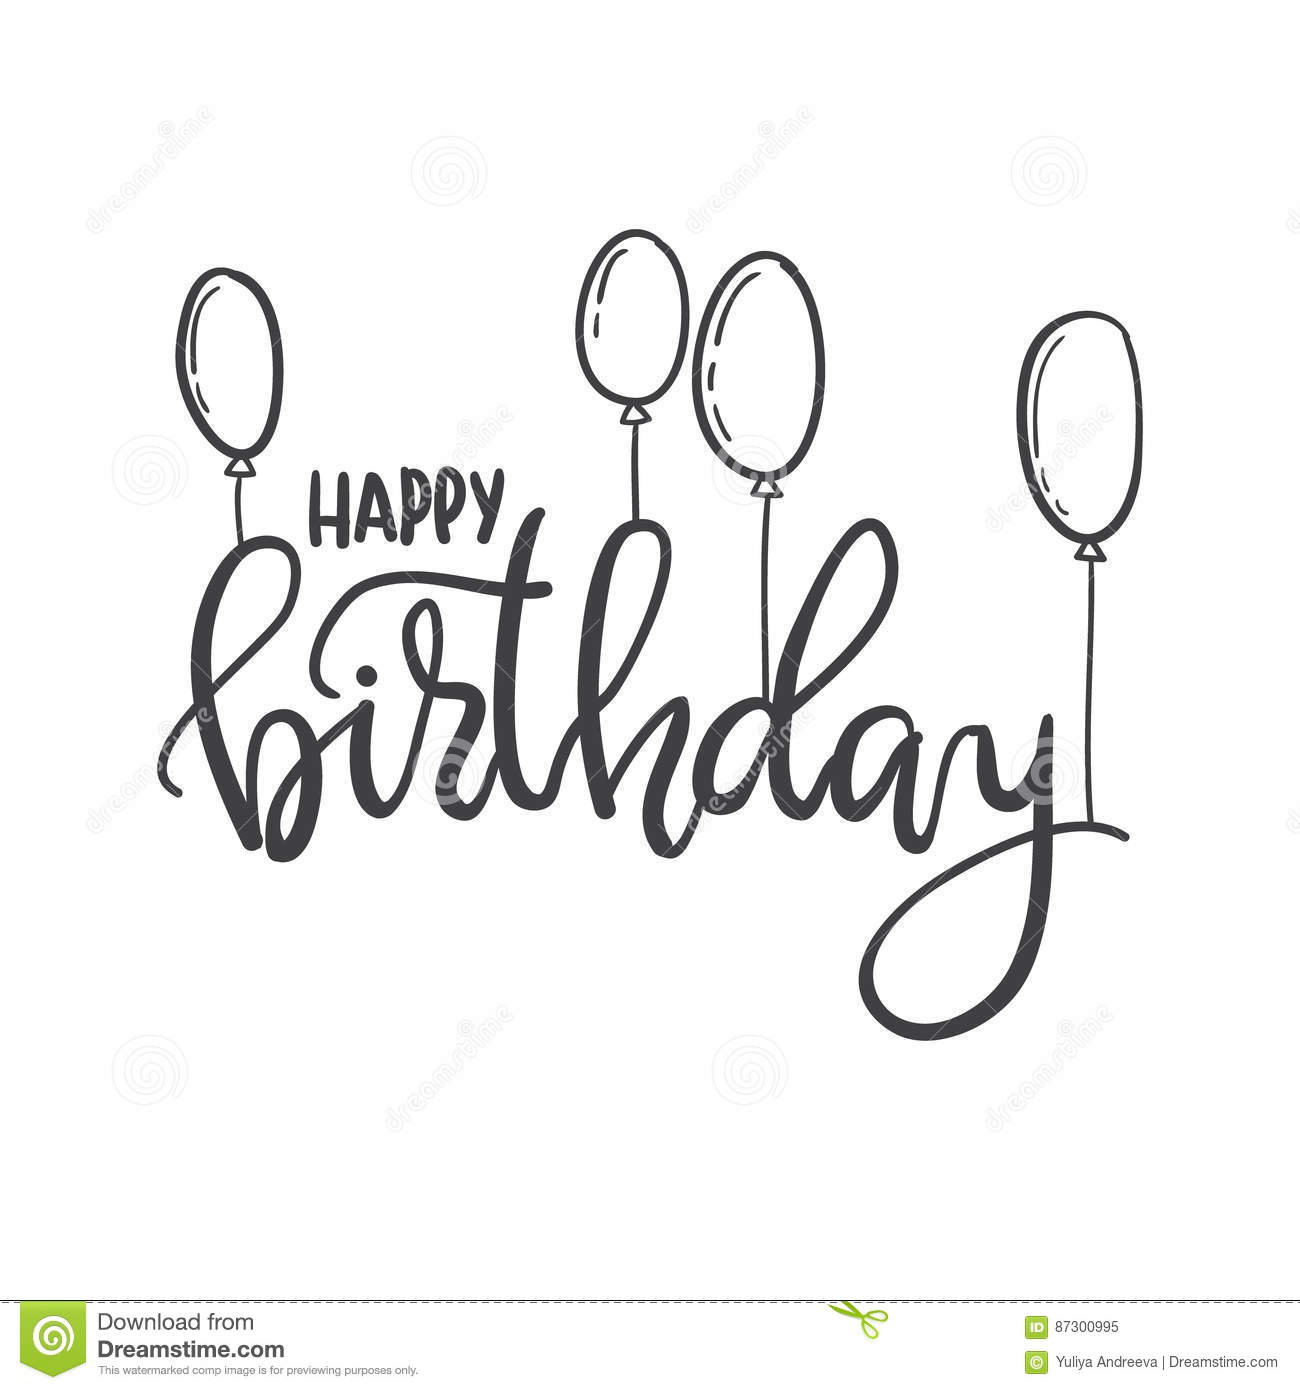 Happy Birthday Hand Lettering Typography Template For Posters Greeting Cards Prints Balloons Party Decorations Stock Illustration Illustration Of Message Font 87300995